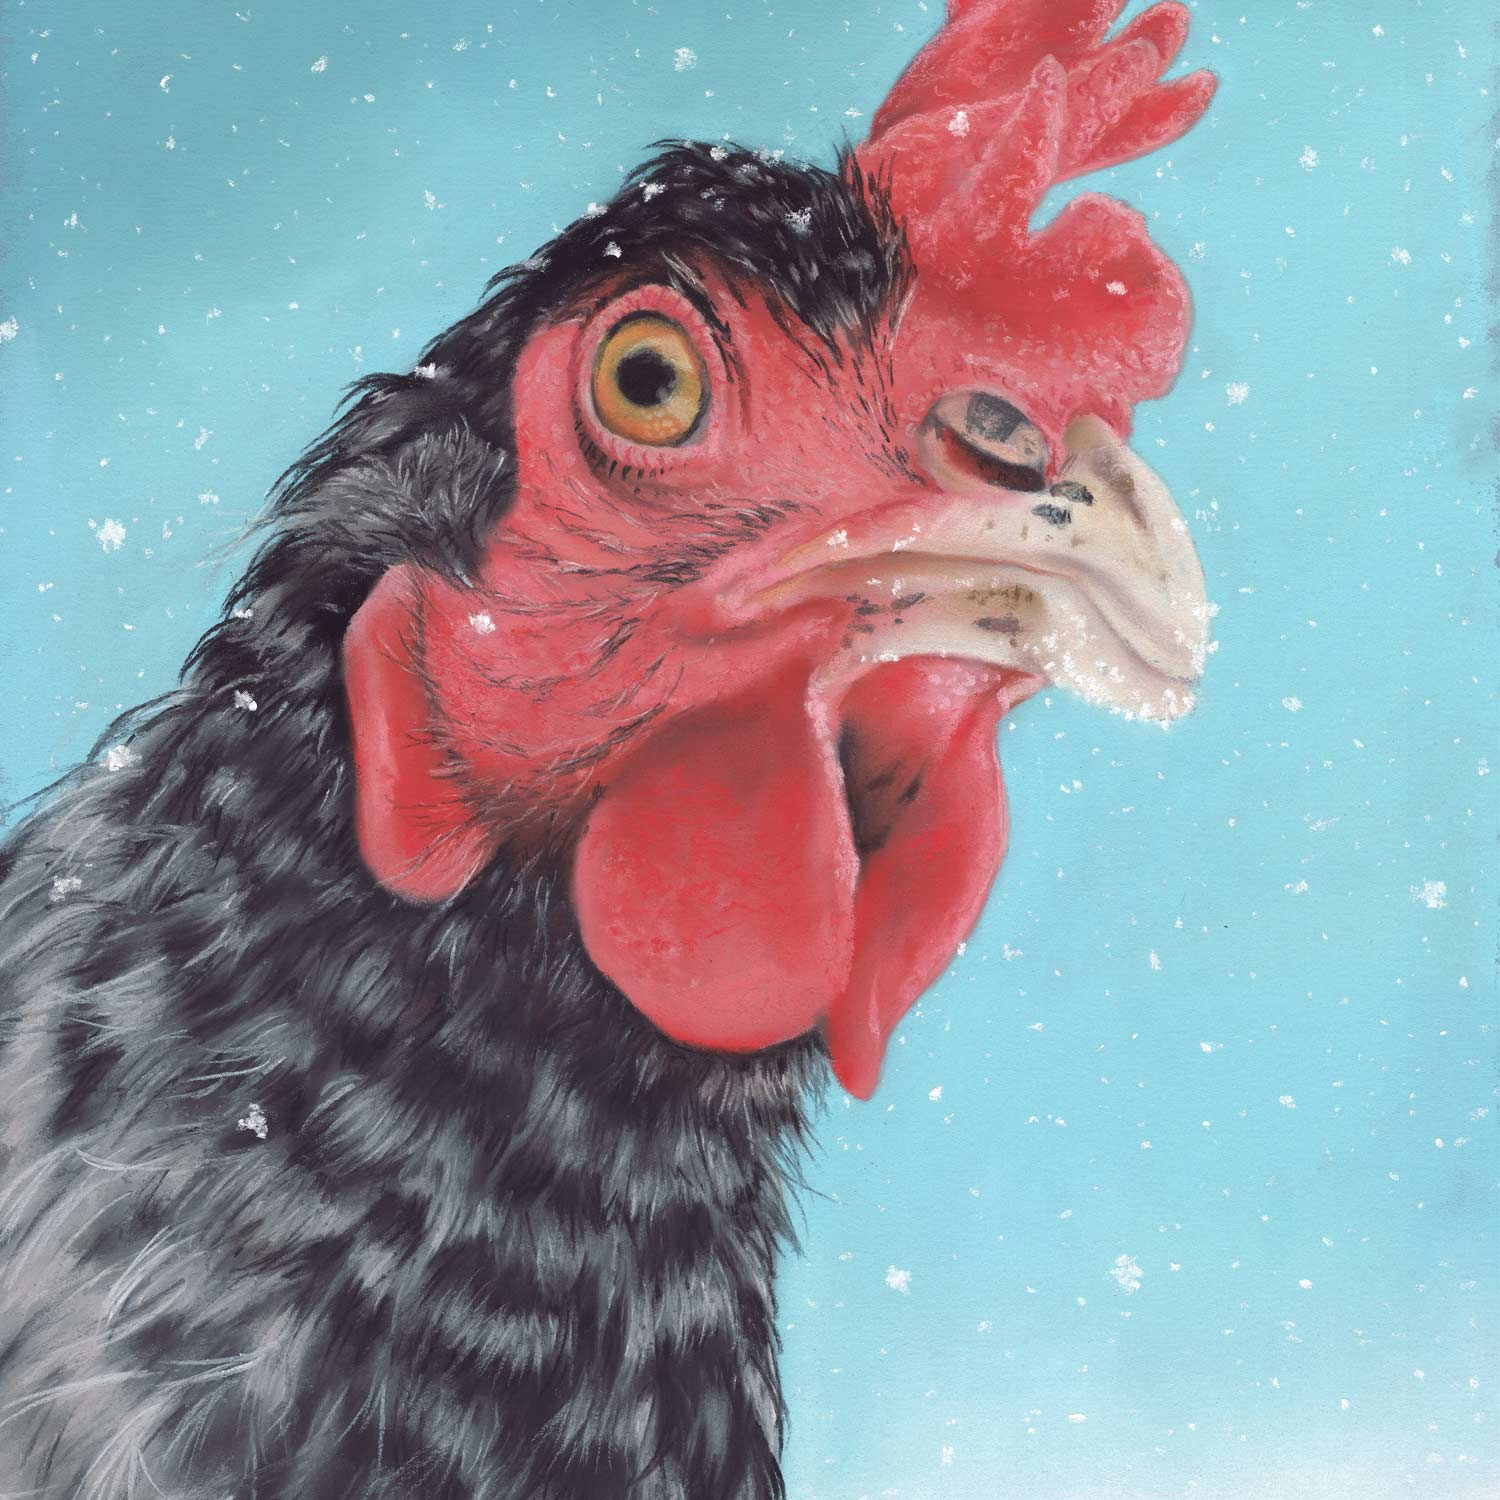 Winter-Hen-Square.jpg